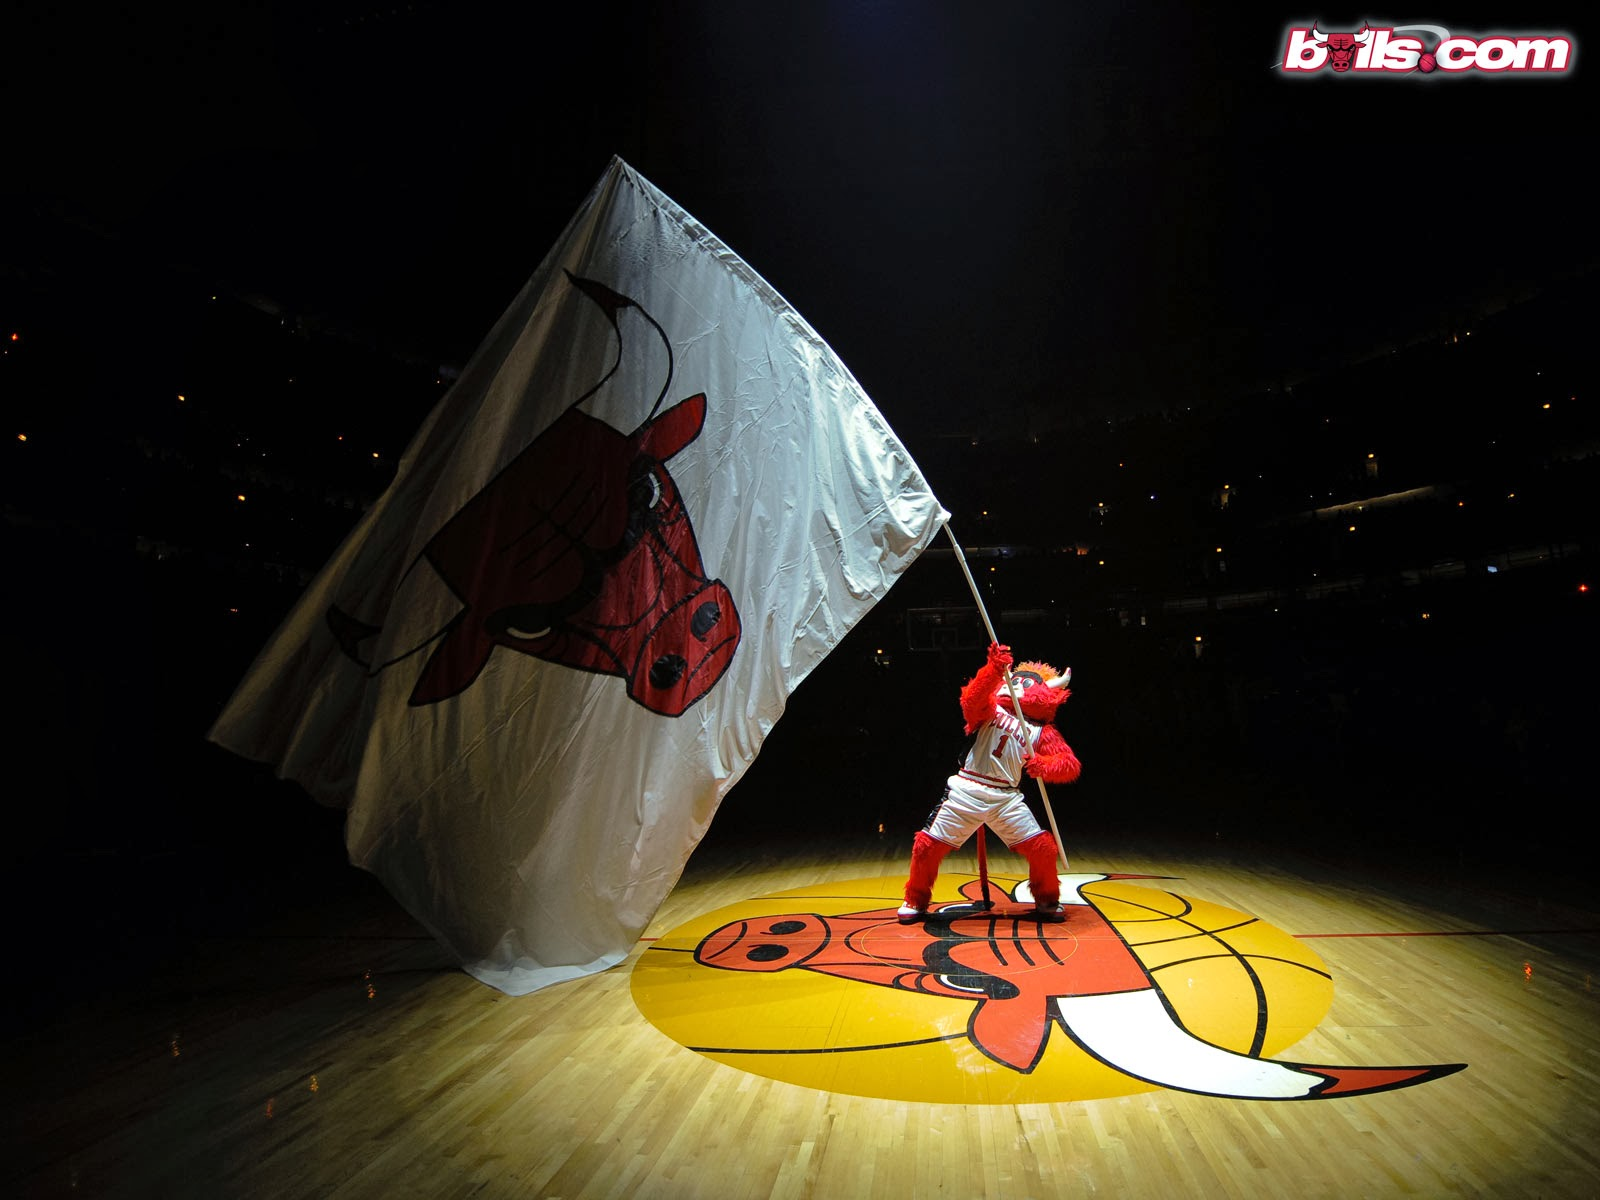 Chicago Bulls HD Wallpapers HD Wallpapers 360 1600x1200